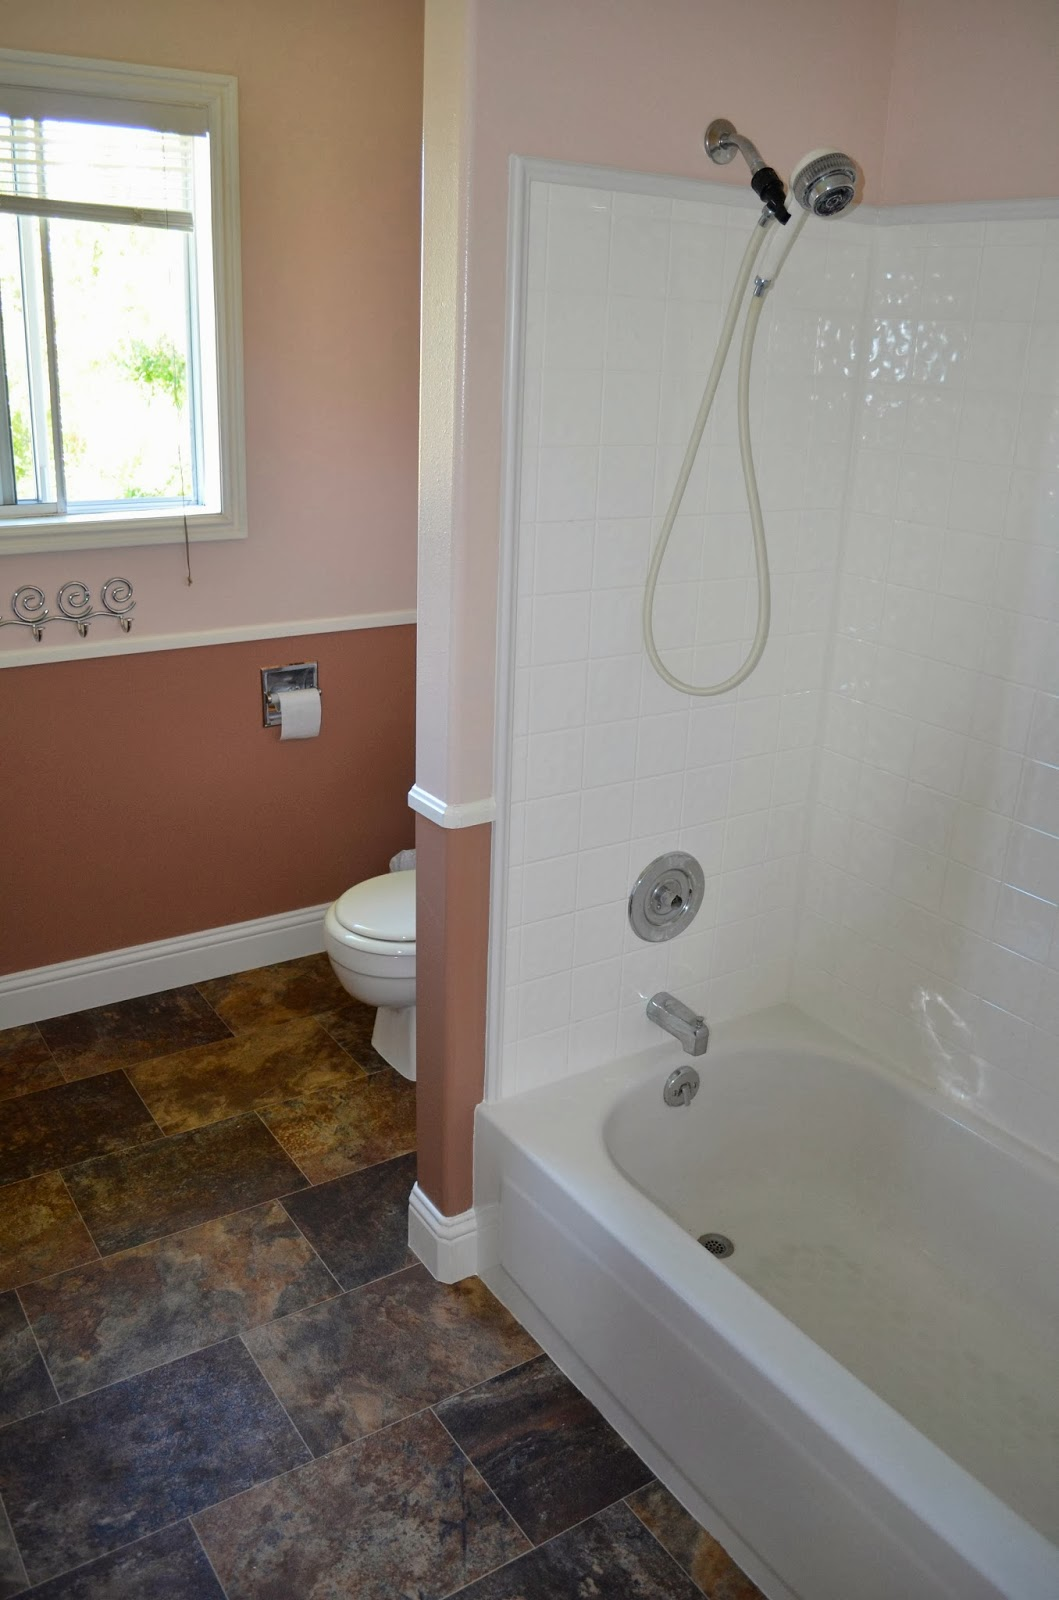 Painting Bathroom Tile Board one thing leads to another - mostly diy bathroom repair and